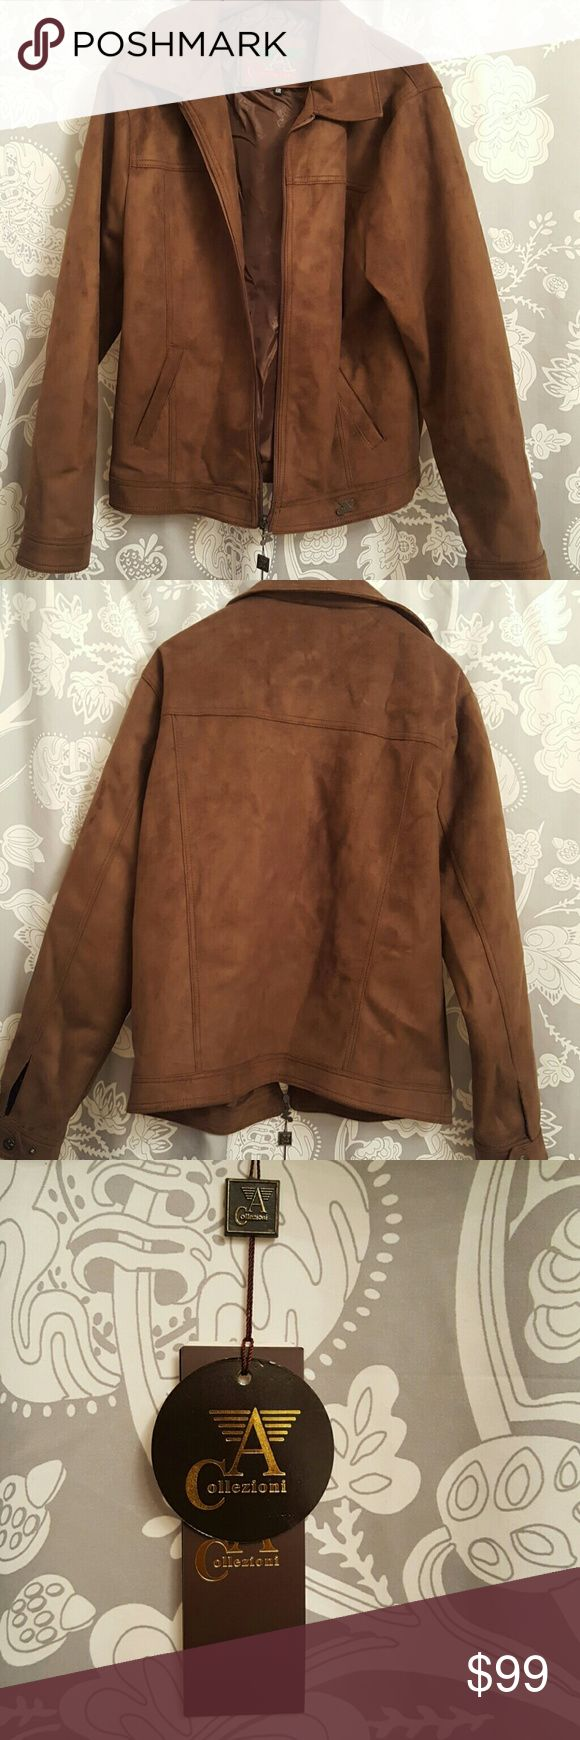 New w/Tags Armani Collezioni brown suede jacket Mens Brown suede, New with tags leather suede jacket Never worn Armani Collezioni Jackets & Coats Performance Jackets